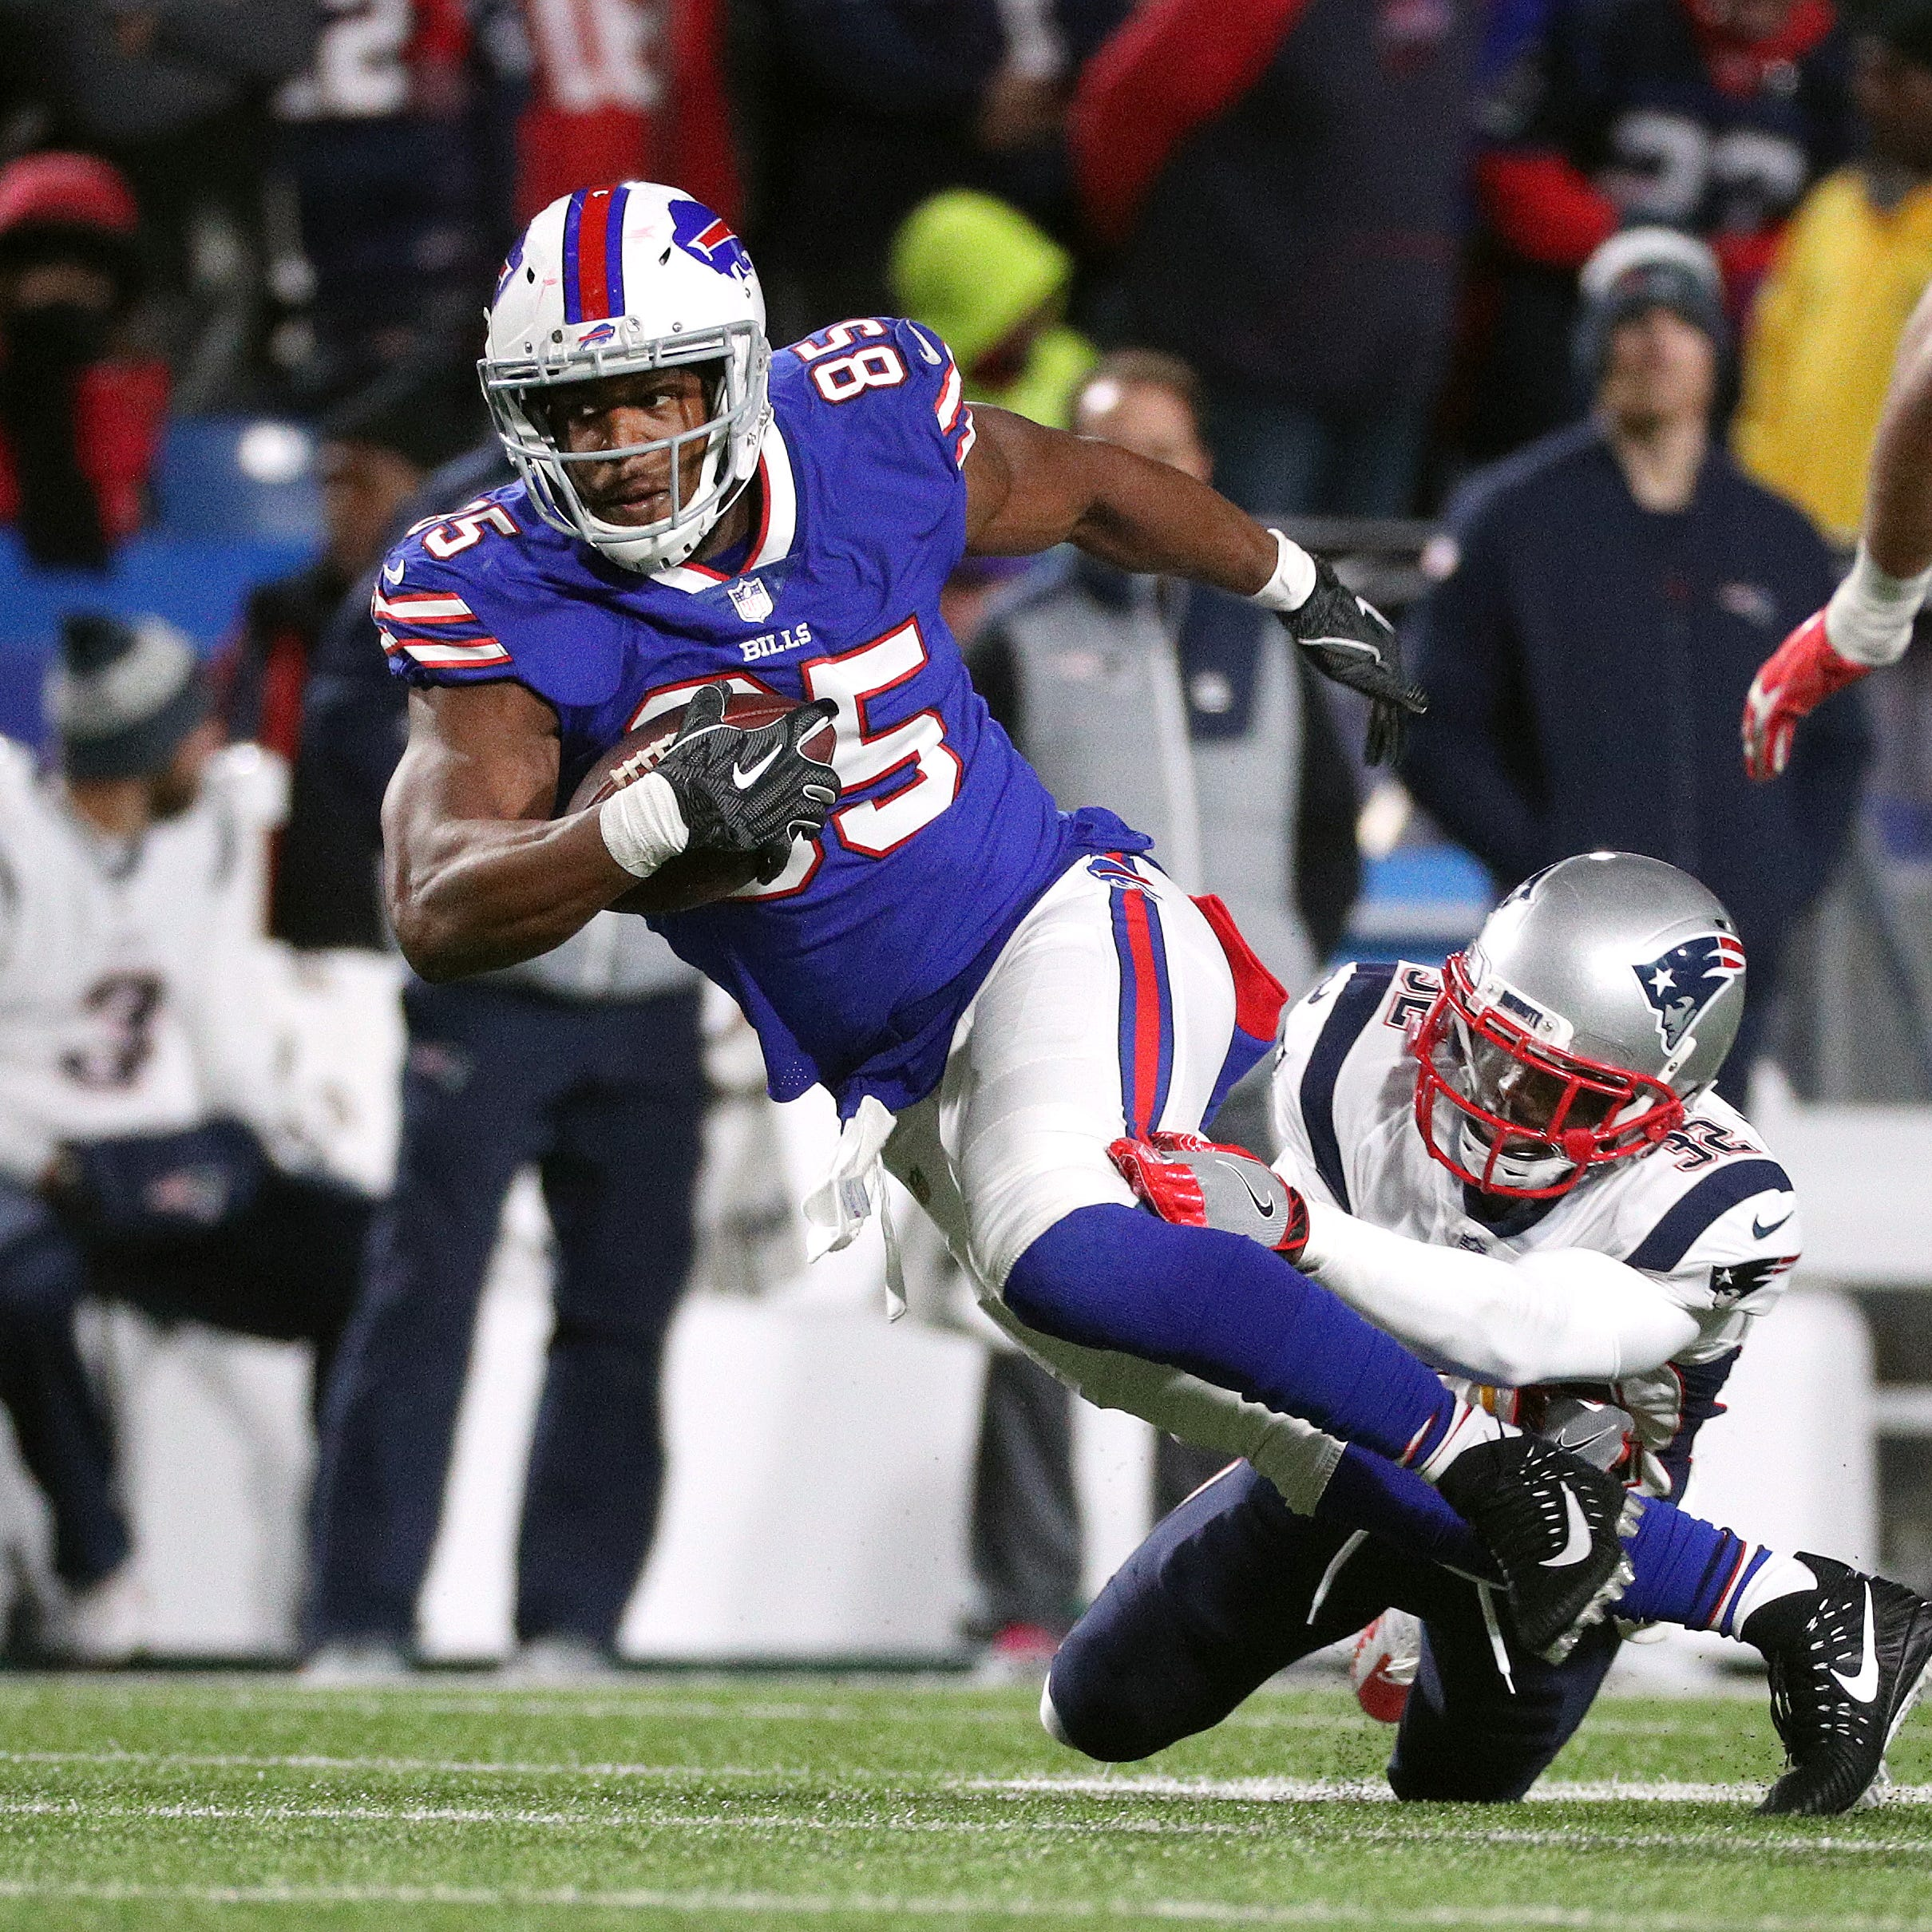 After a terrible season, what should the Buffalo Bills do with tight end Charles Clay?